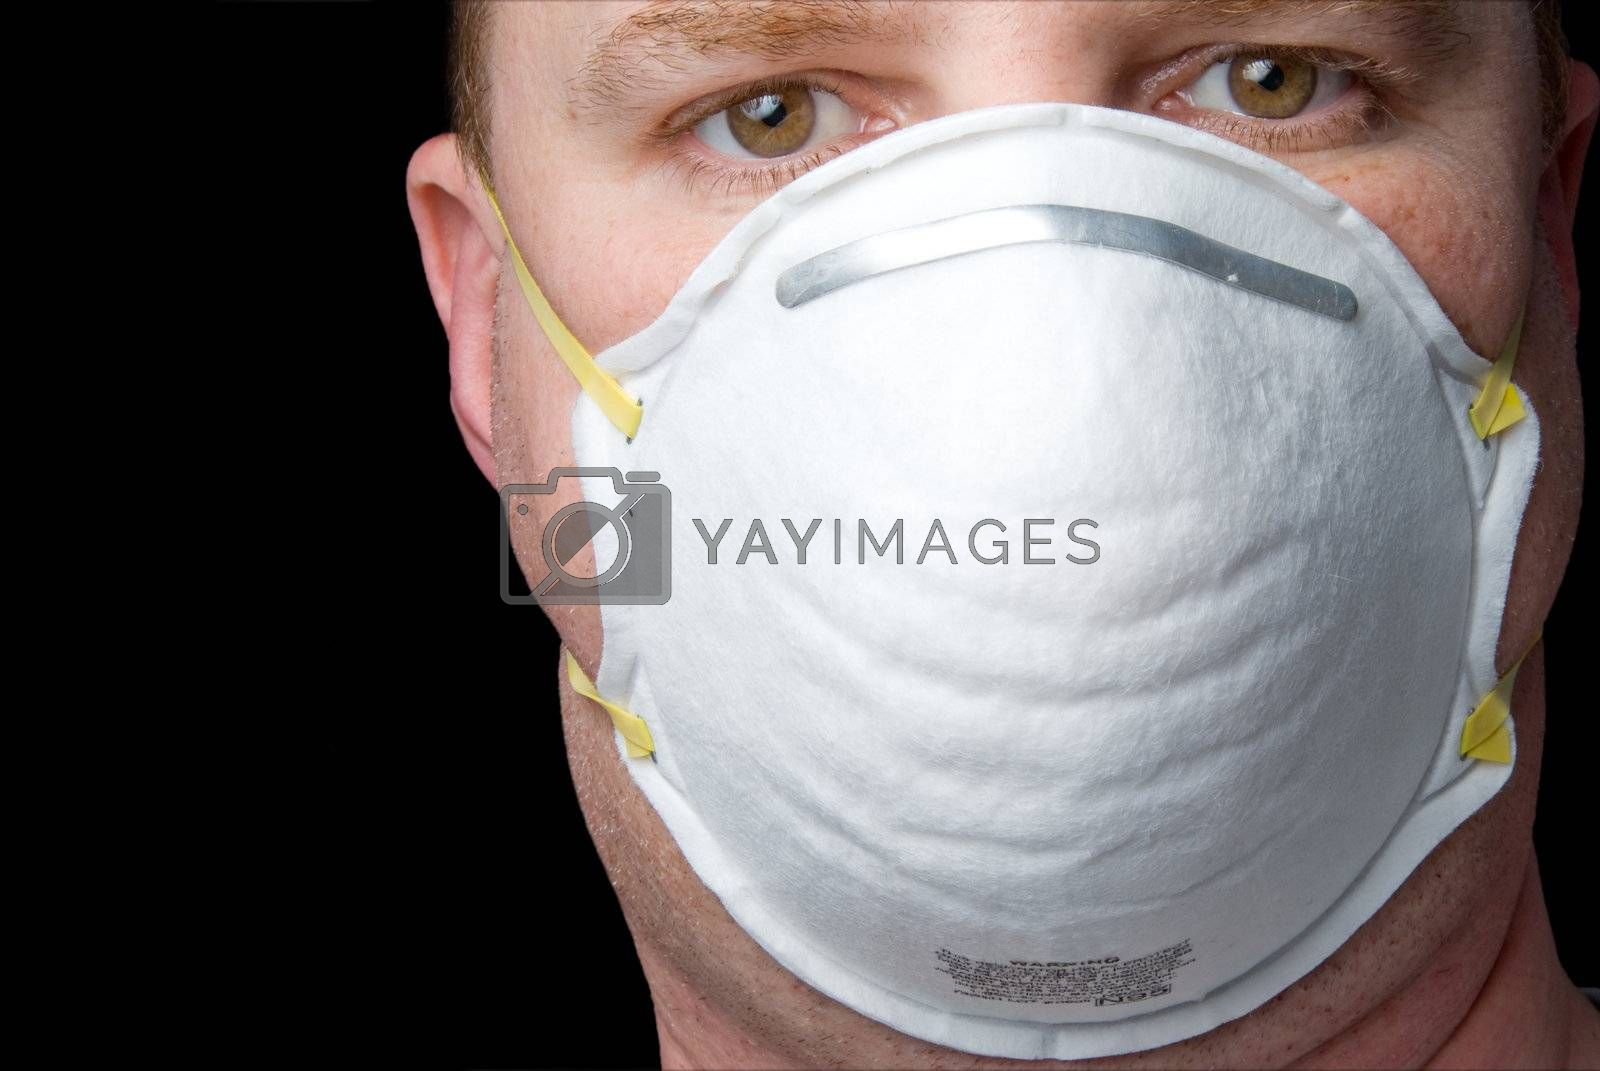 An inexpensive industrial respirator personal protective equipment.